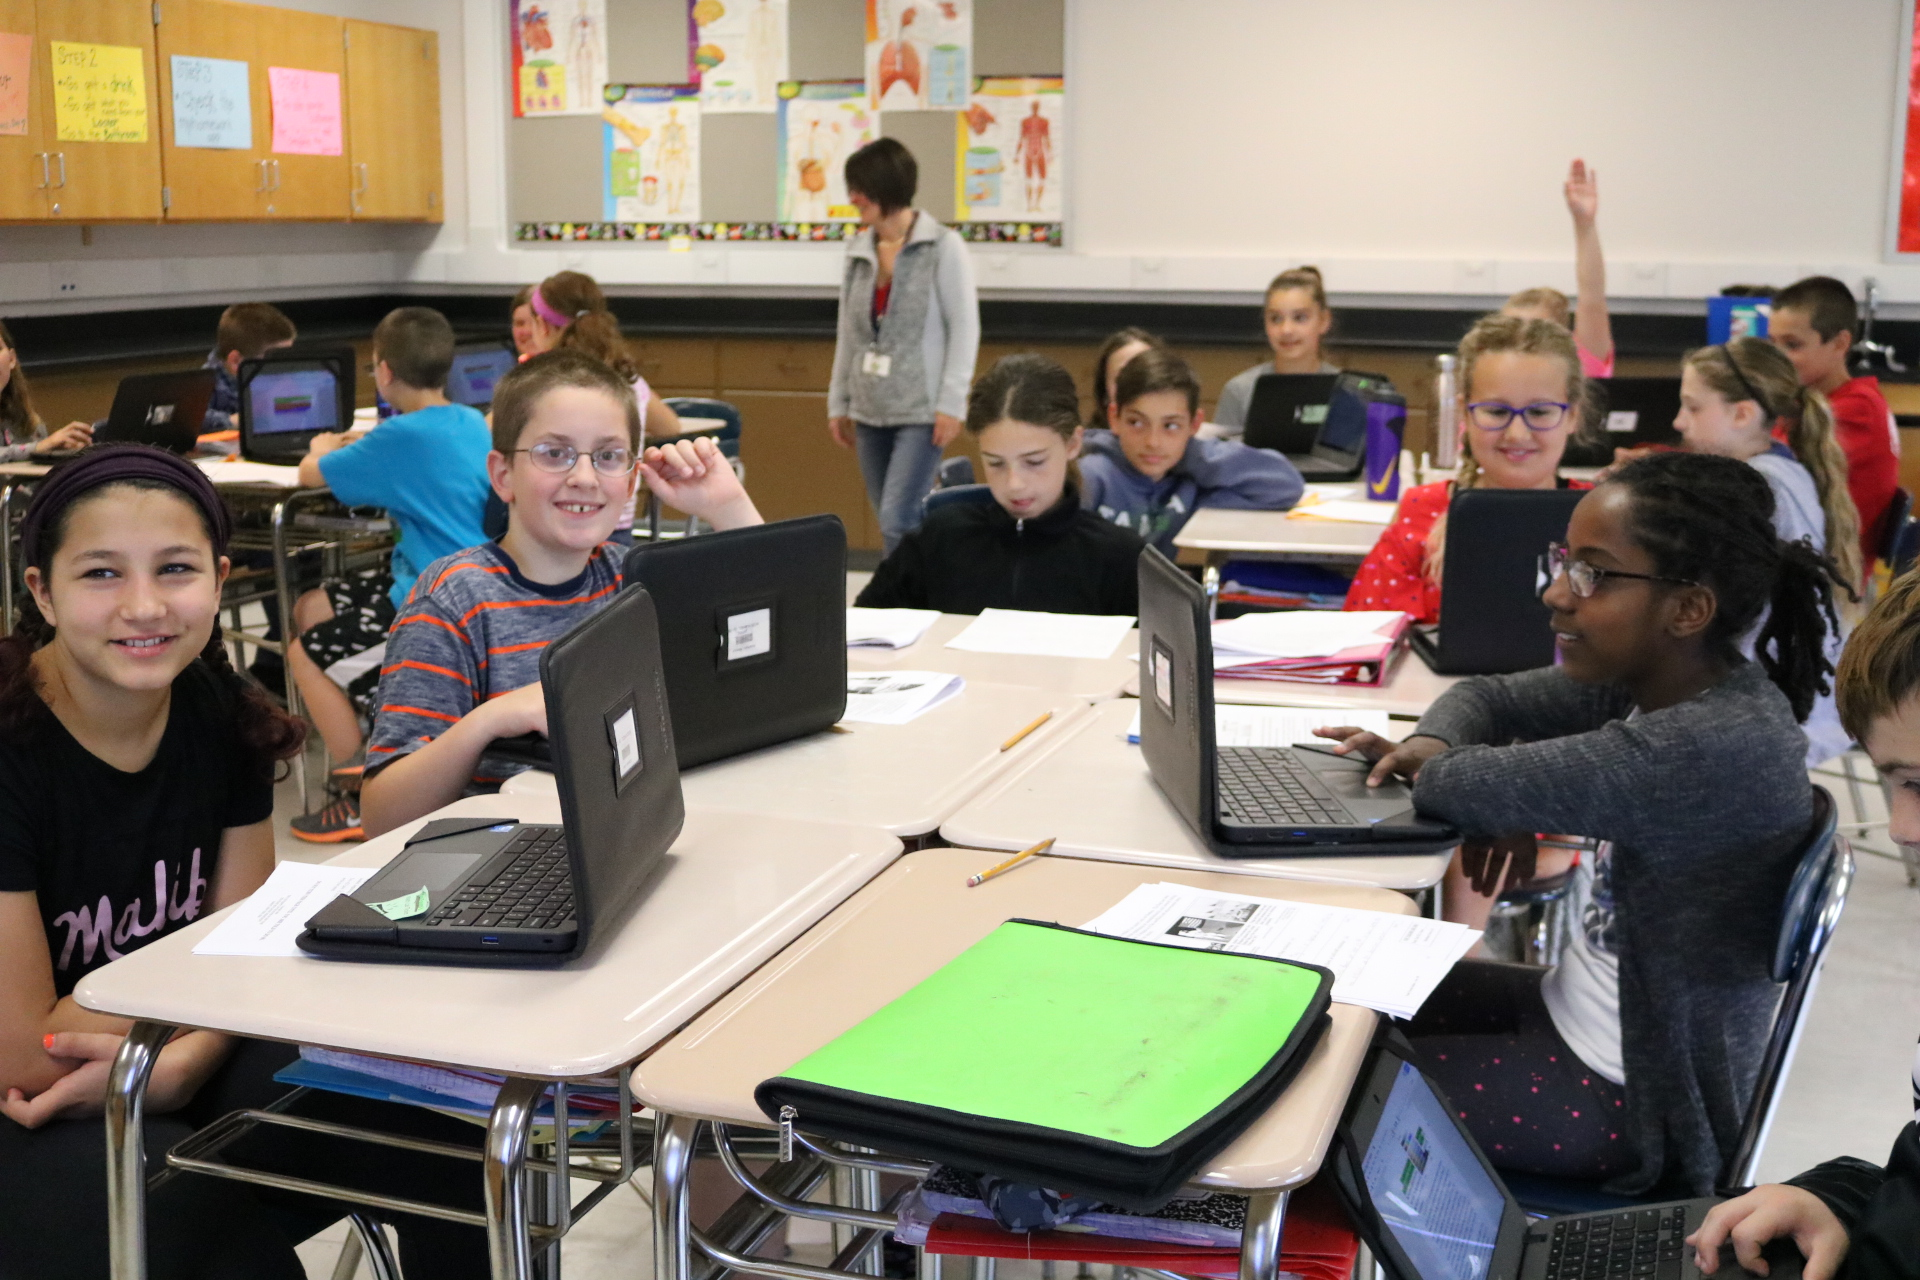 Before automating math interventions to help students struggling with math, 84% of Williamsville Central School District students in grade 5 passed the final exam. Since the district began using grade free tests at all four middle schools, the district's passing rate has increased to 90%. The first pilot school now has a 95% passing rate.